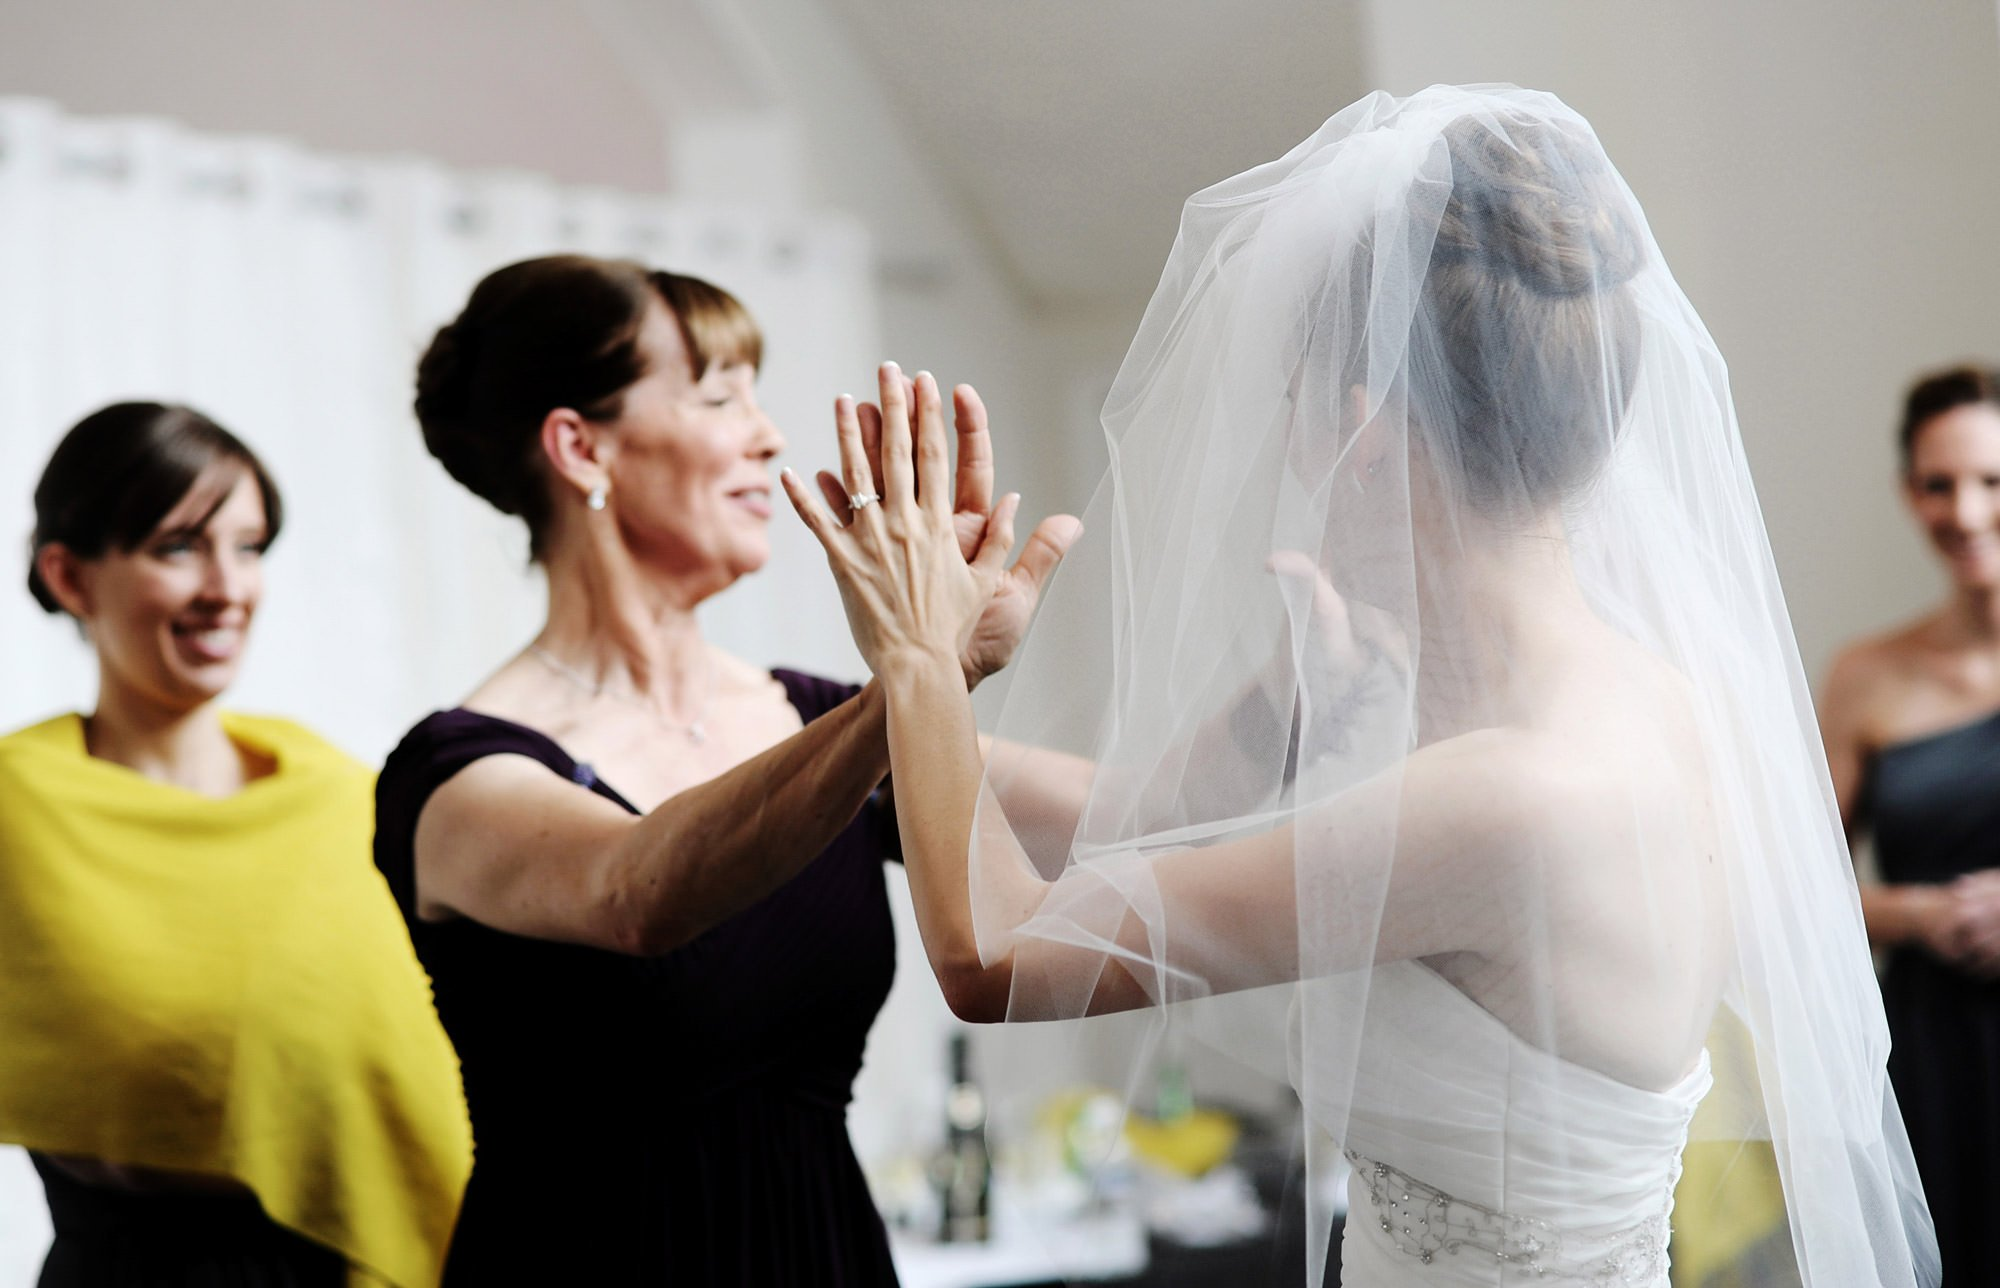 The bride gives her mom a high-five before the wedding ceremony at Celebrations at the Bay.